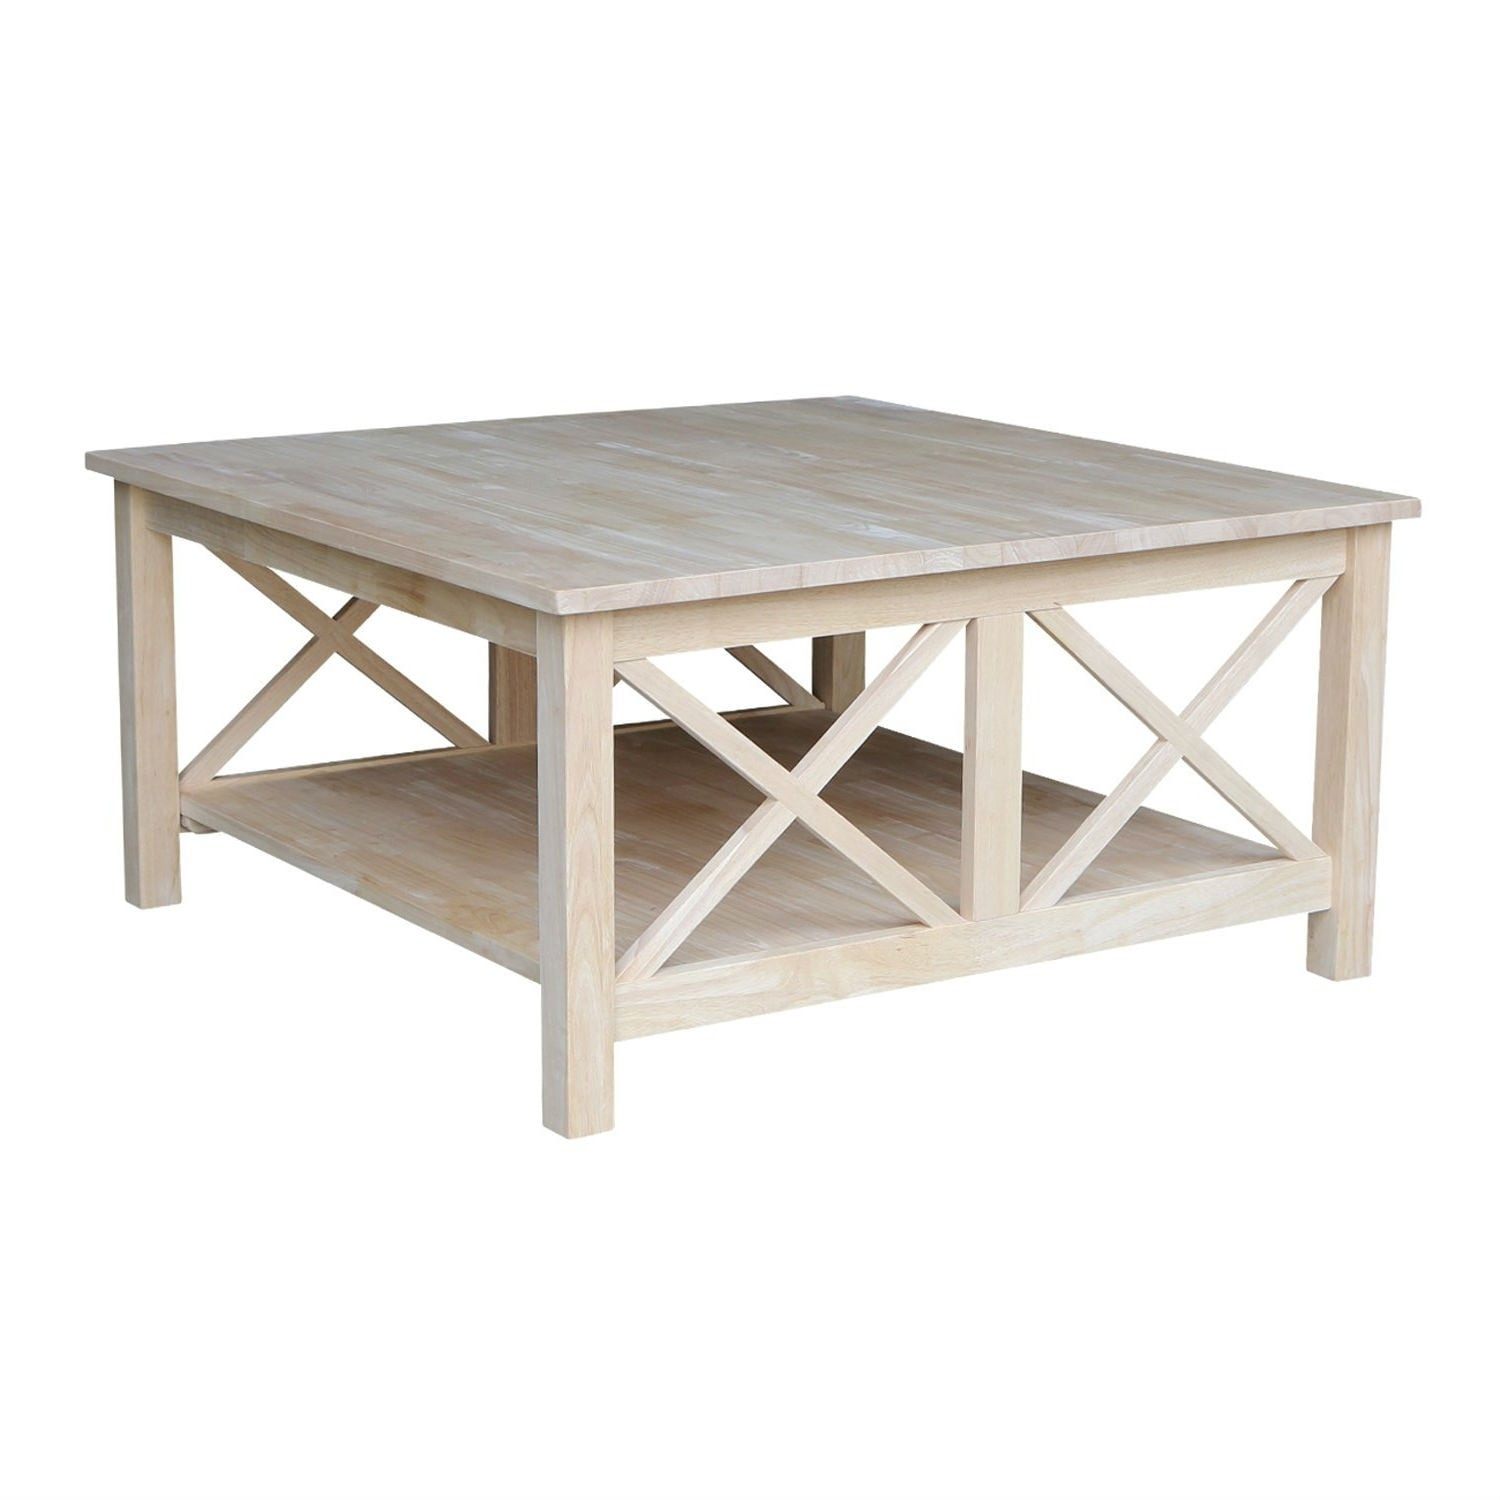 square unfinished solid wood coffee table with bottom shelf pictured 36 in w x 36 in d x 18 in h